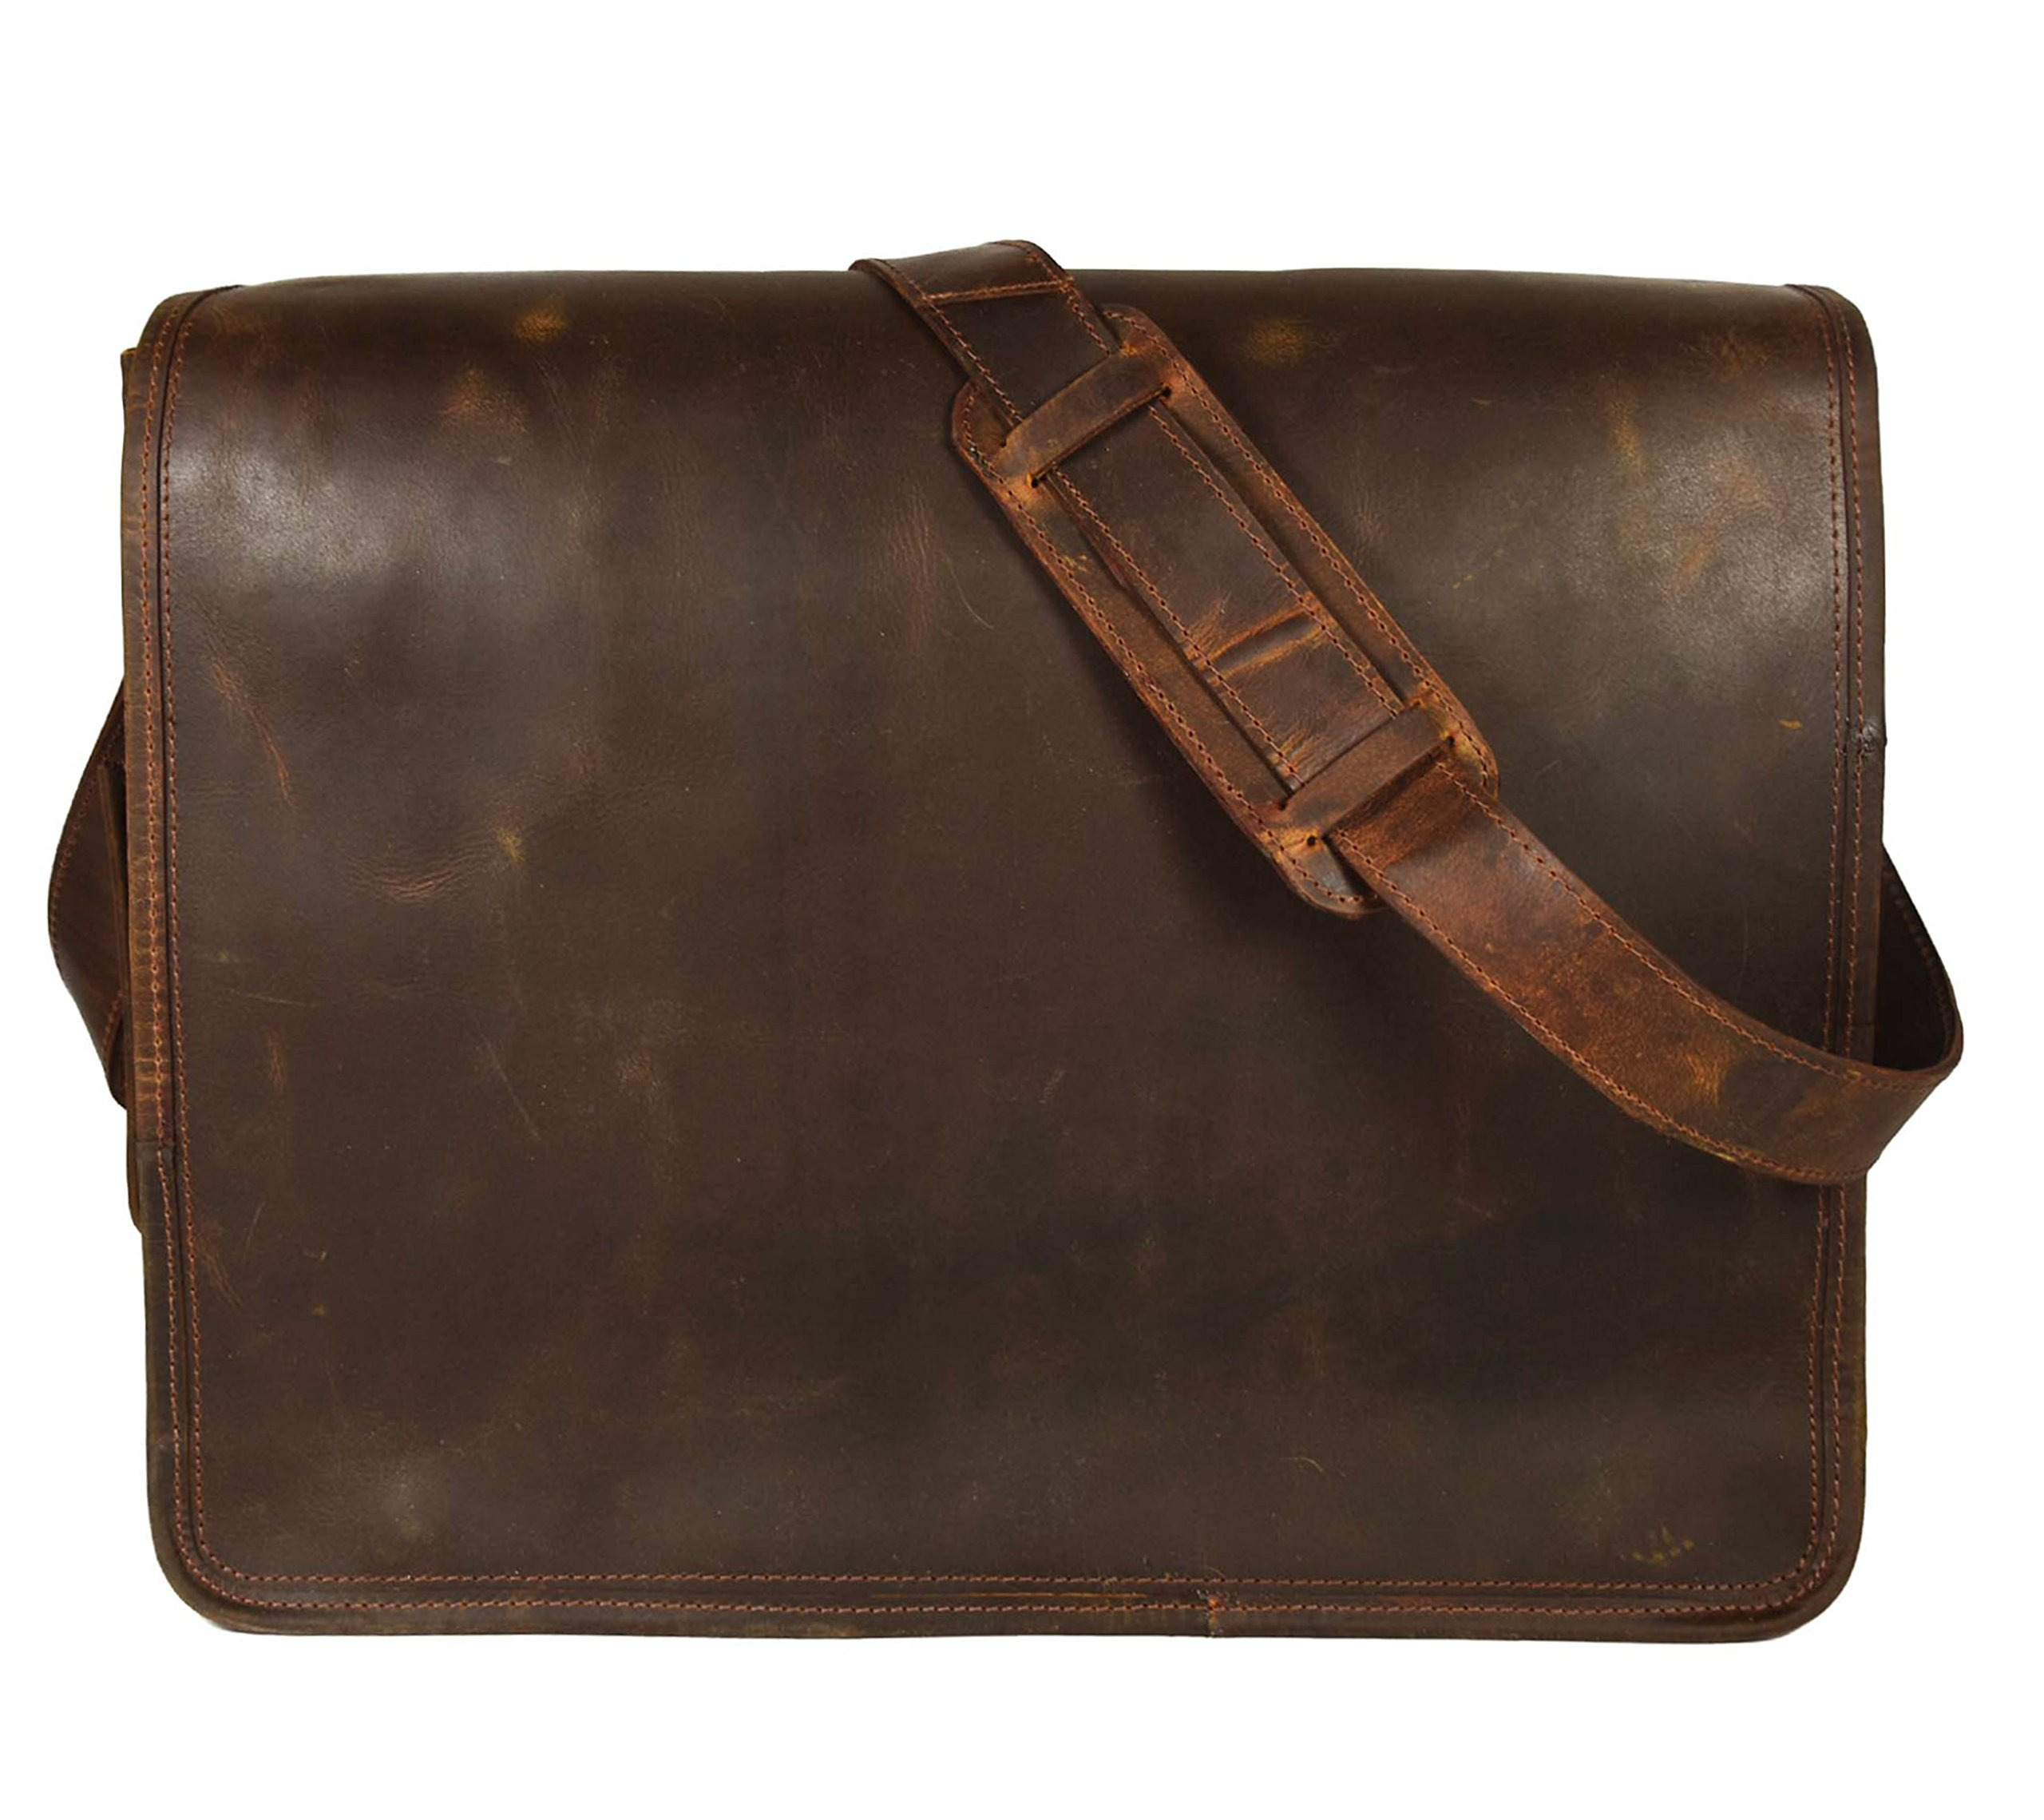 KK's Leather hunter Leather Bags 18'' Inch Leather Bags genuine leather bags Laptop Messenger Bags Vintage Brown Bags full flap bags Briefcase bags everyday bags weekend bags for men and women